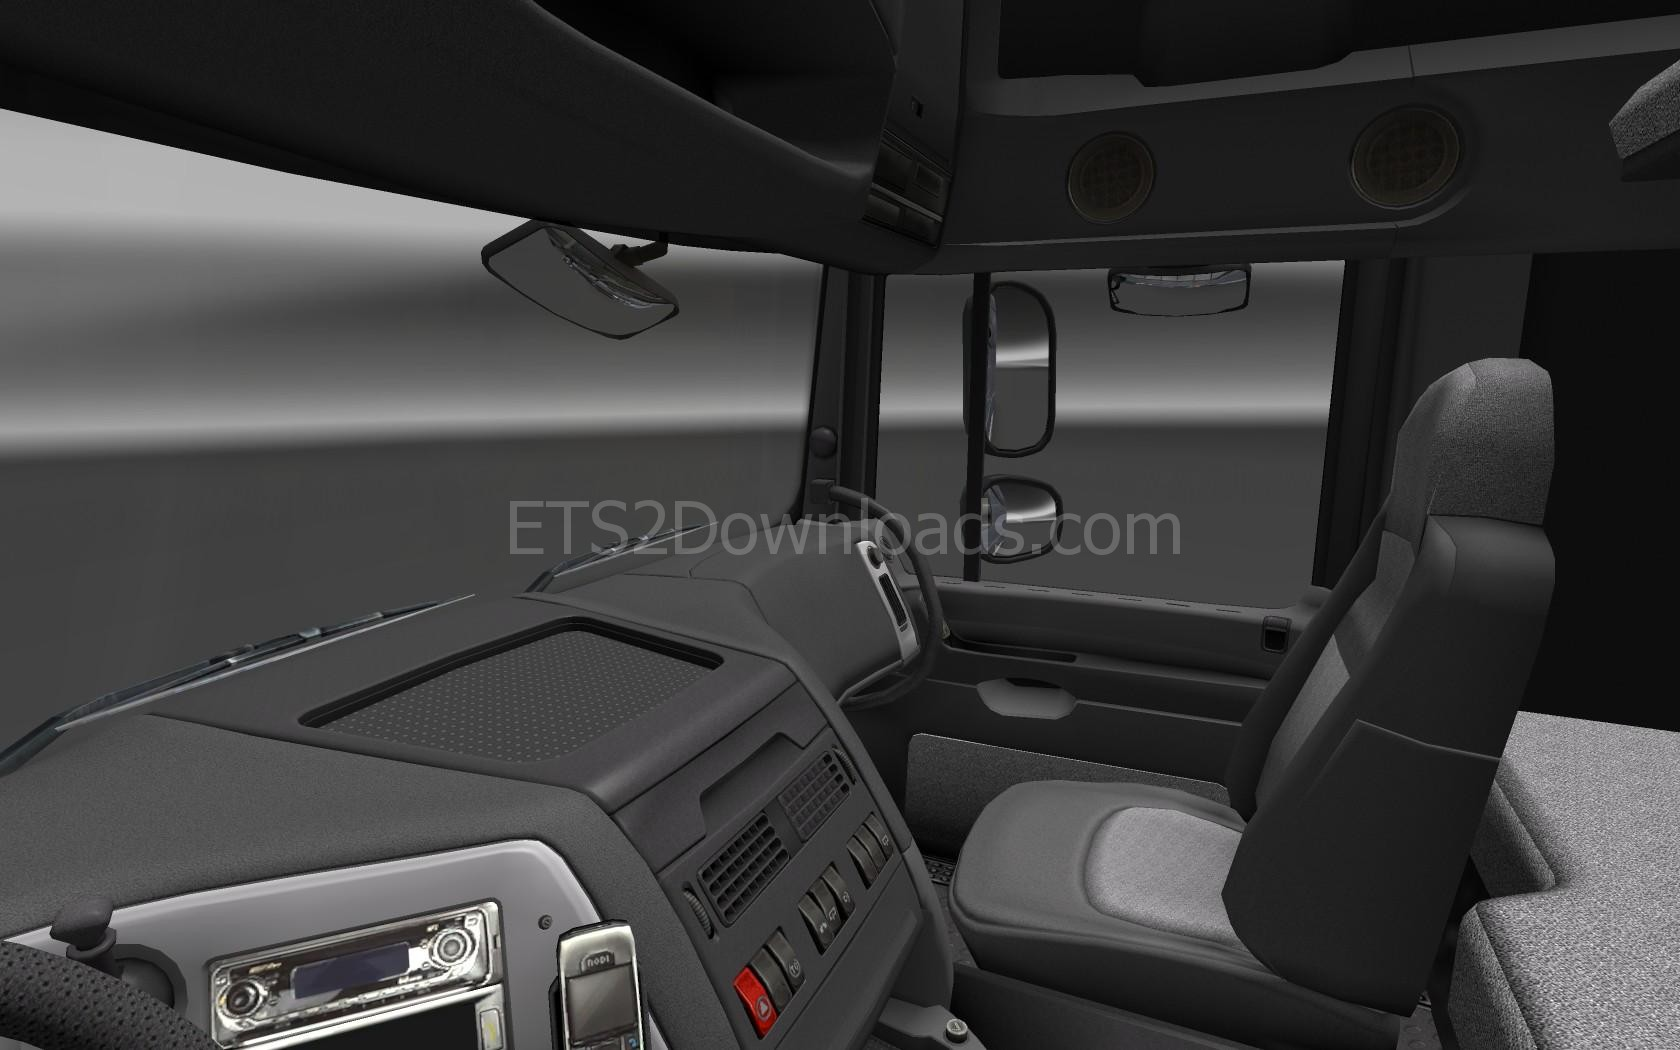 hd-interior-for-daf-xf-ets2-2